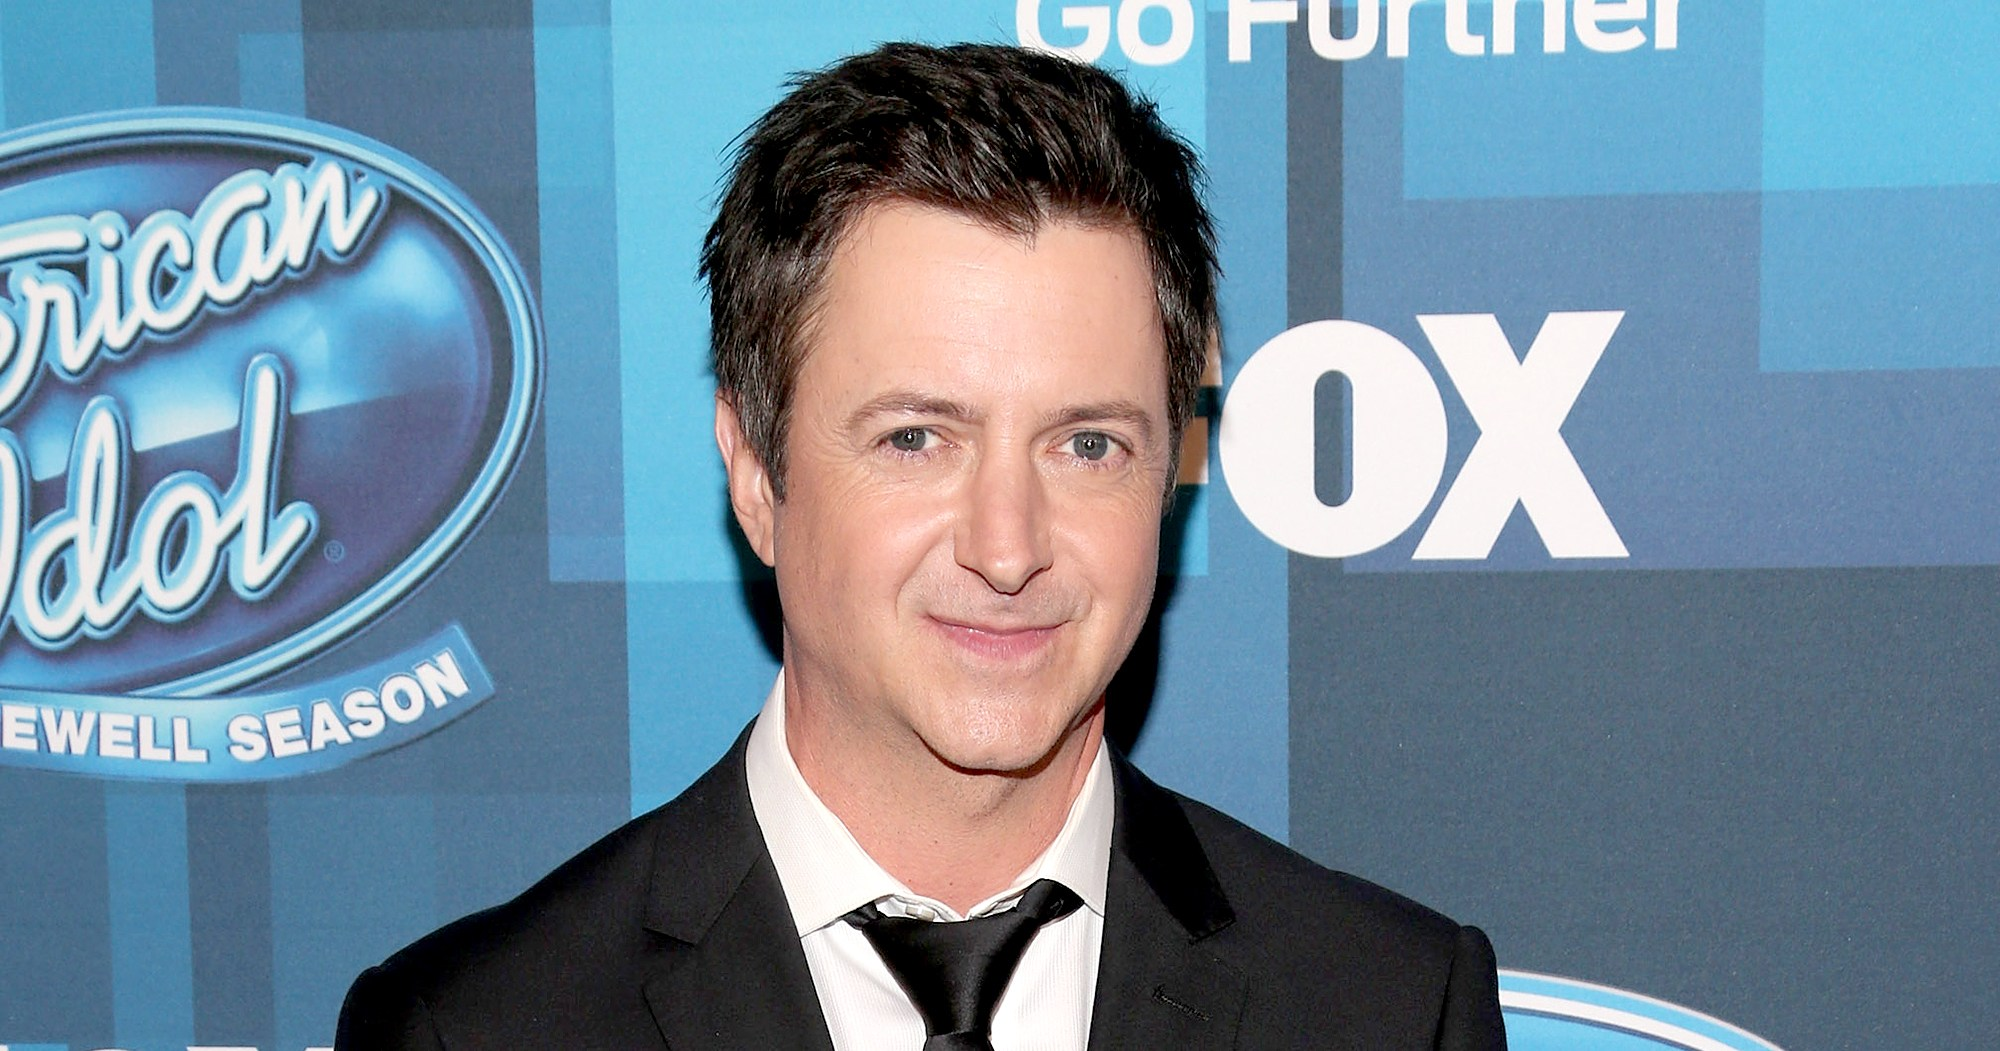 Former 'American Idol' Cohost Brian Dunkleman Defends His Job as Uber Driver